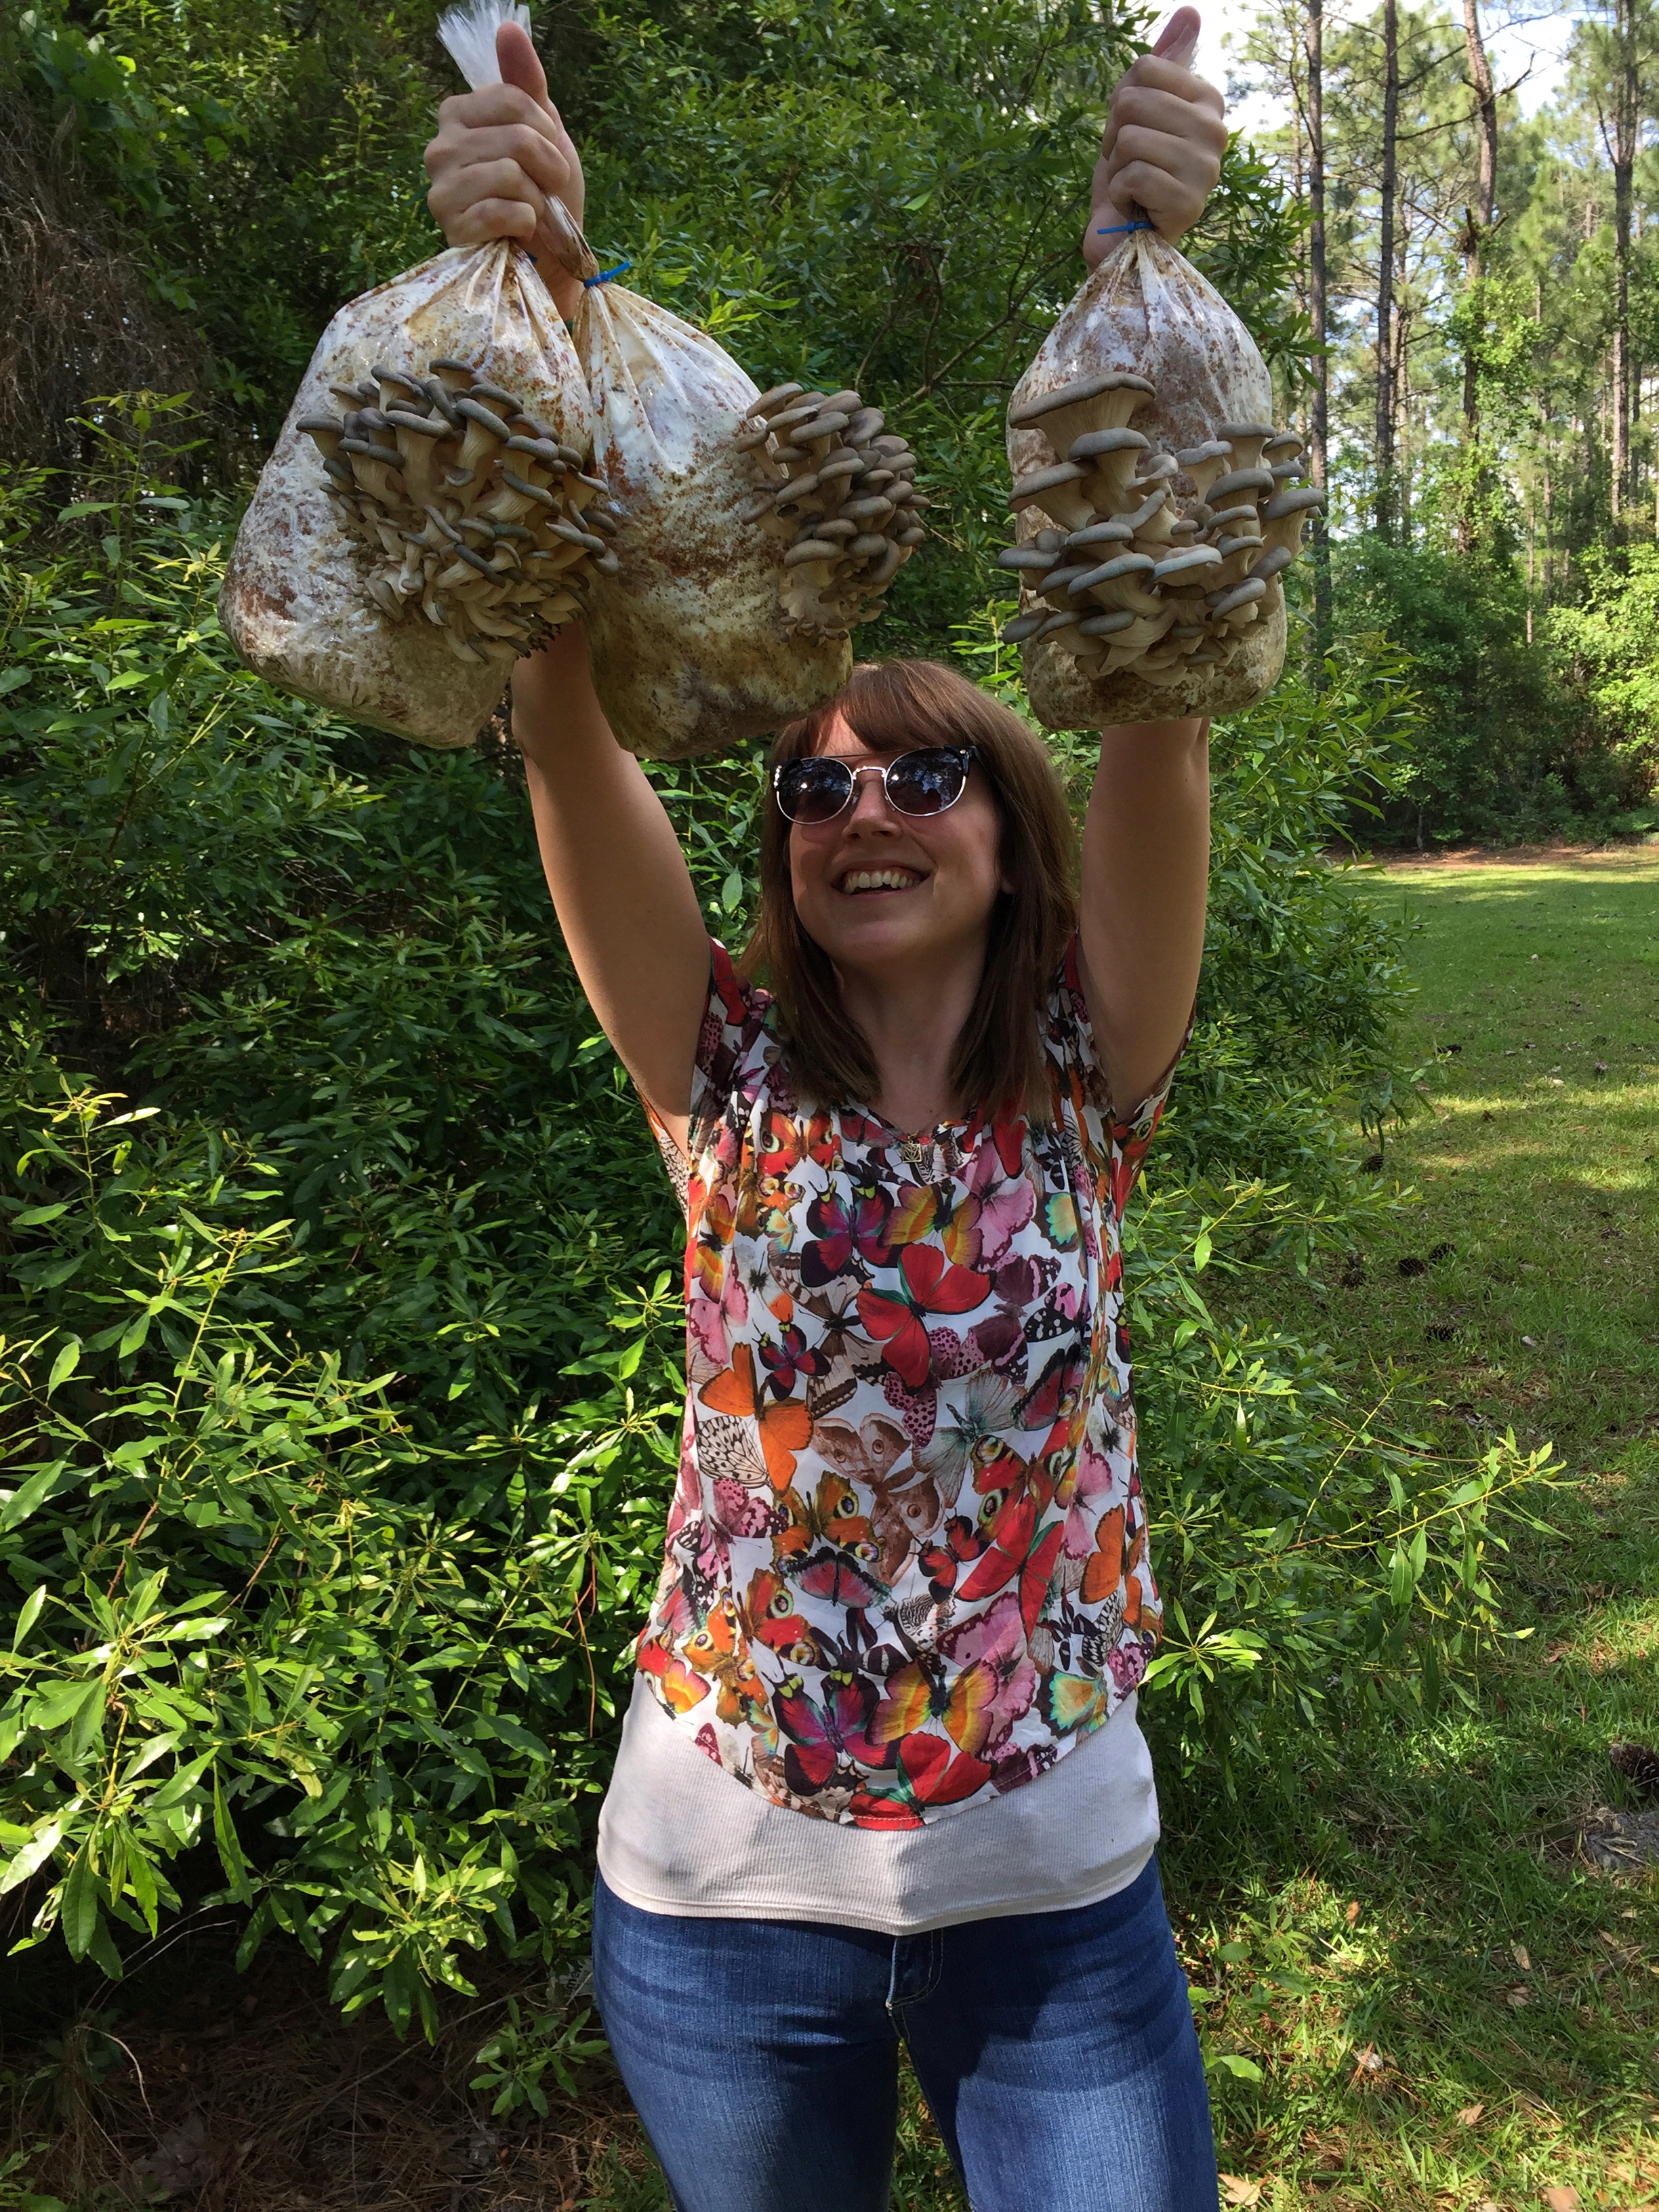 My lovely wife-to-be holding some of the more recent Oyster kits. They can get huge!